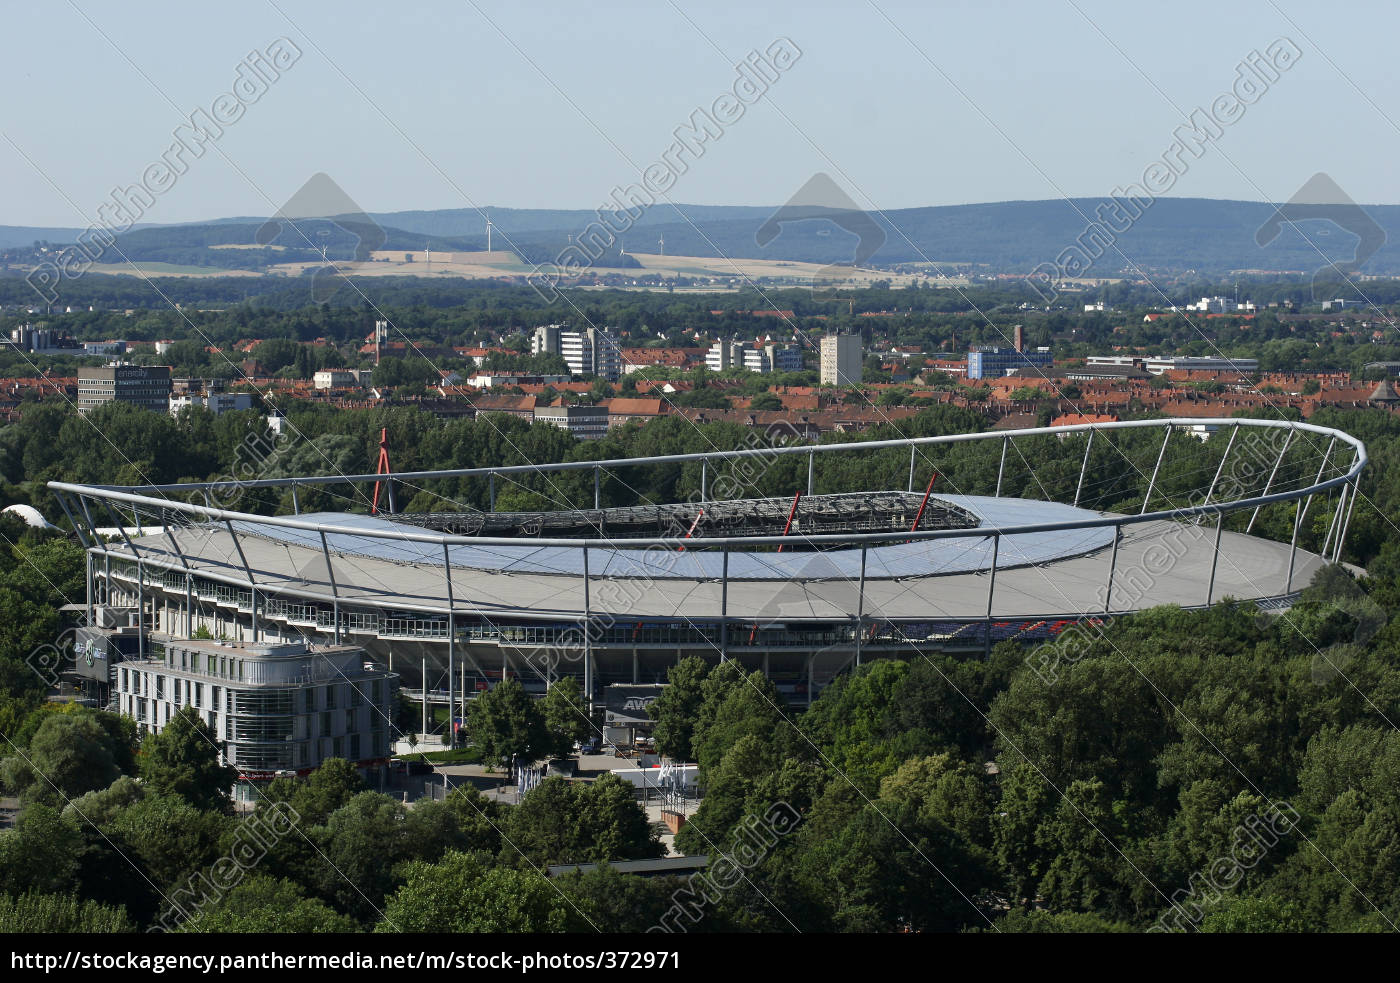 hannover, 7 - 372971